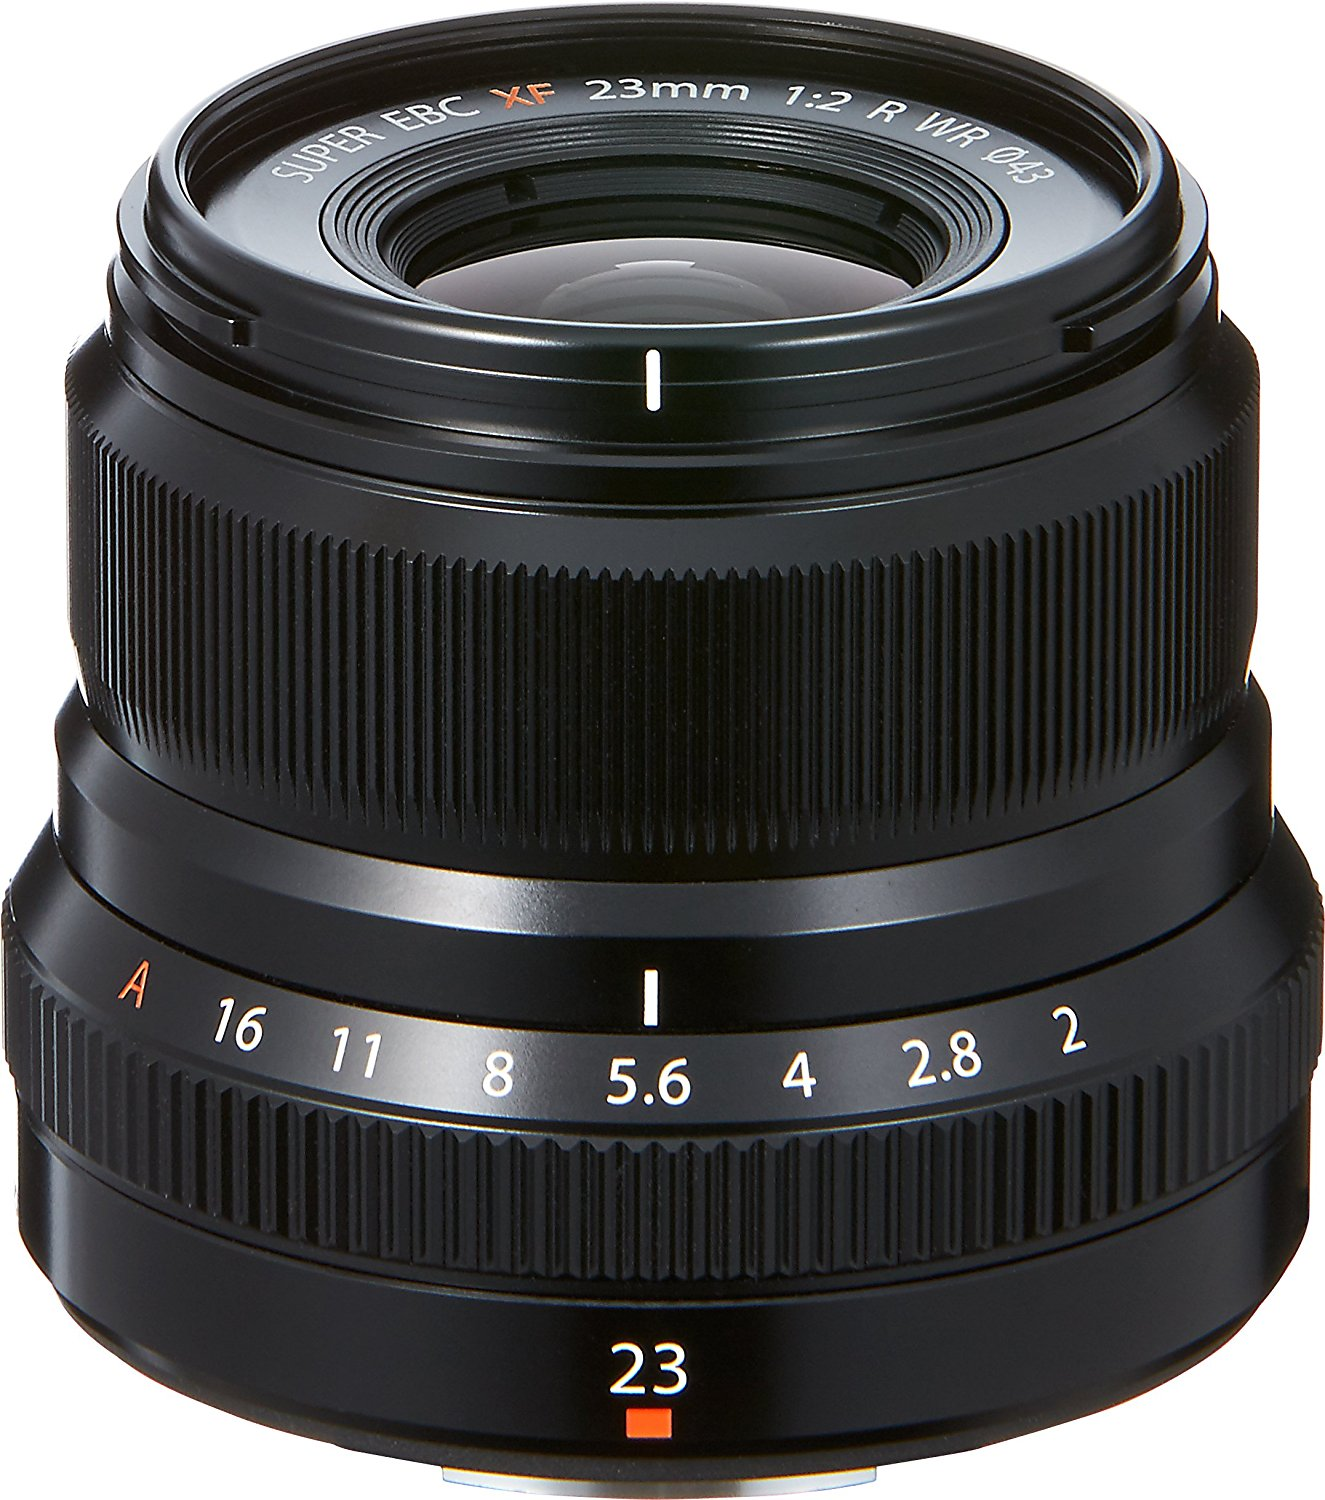 Fujinon XF23mmF2 - Best Lens for Street Photography